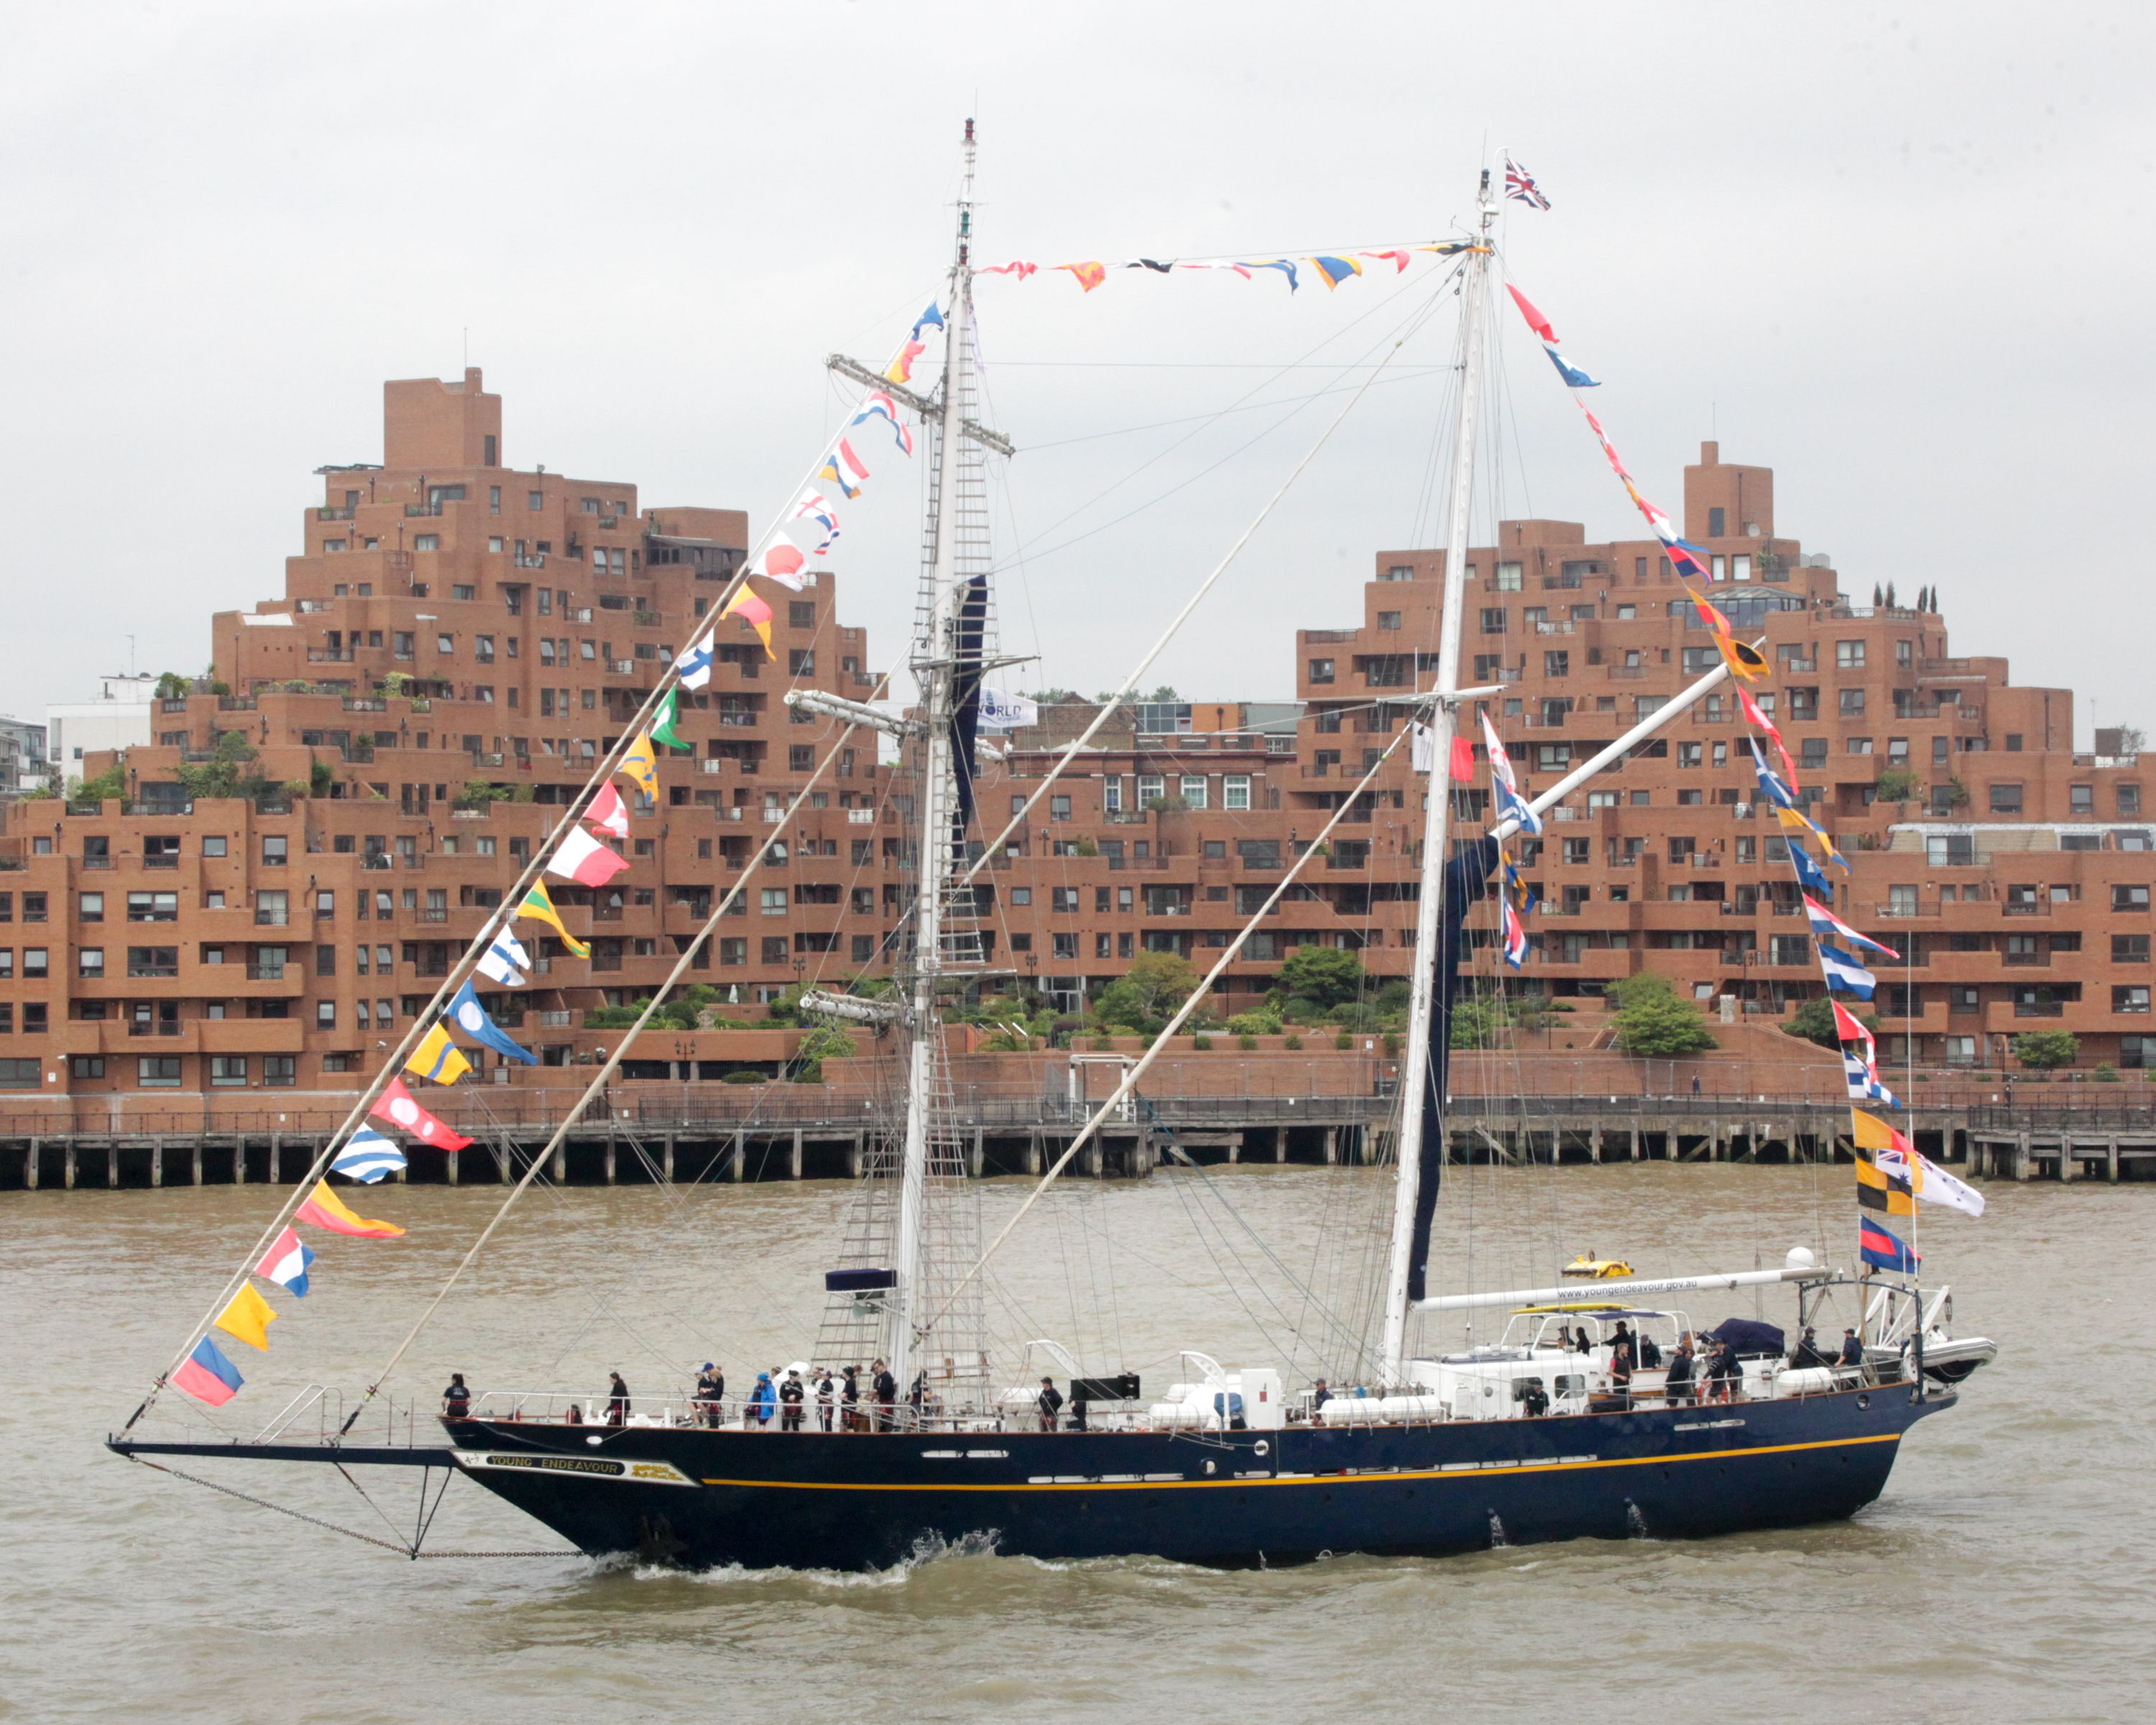 Young Endeavour Came Into London It Set Sail From Australia In December 2014 On A Year Long Circumnavigation Of The World Crew Set Sail Sailing Sailing Ships